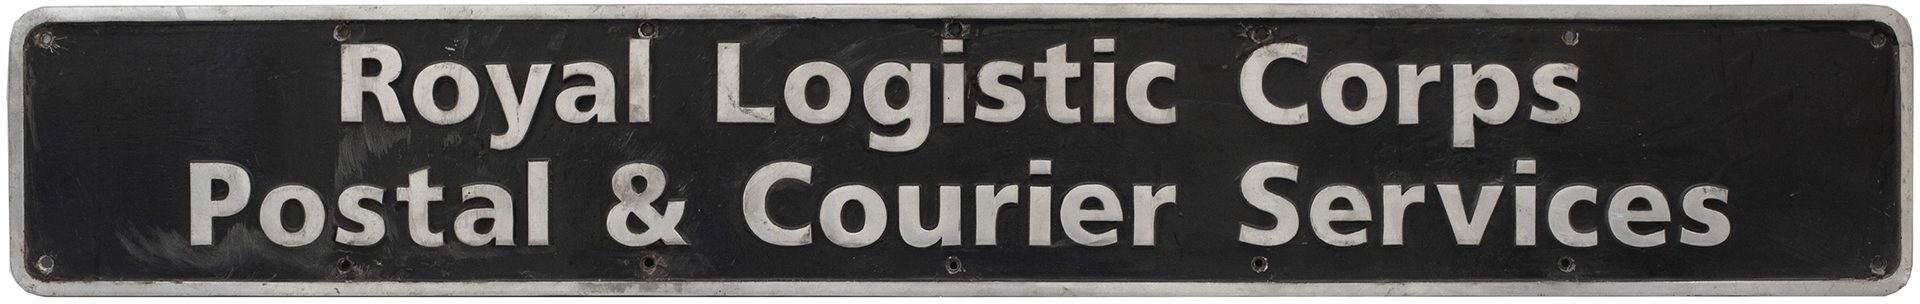 Nameplate ROYAL LOGISTIC CORPS POSTAL & COURIER